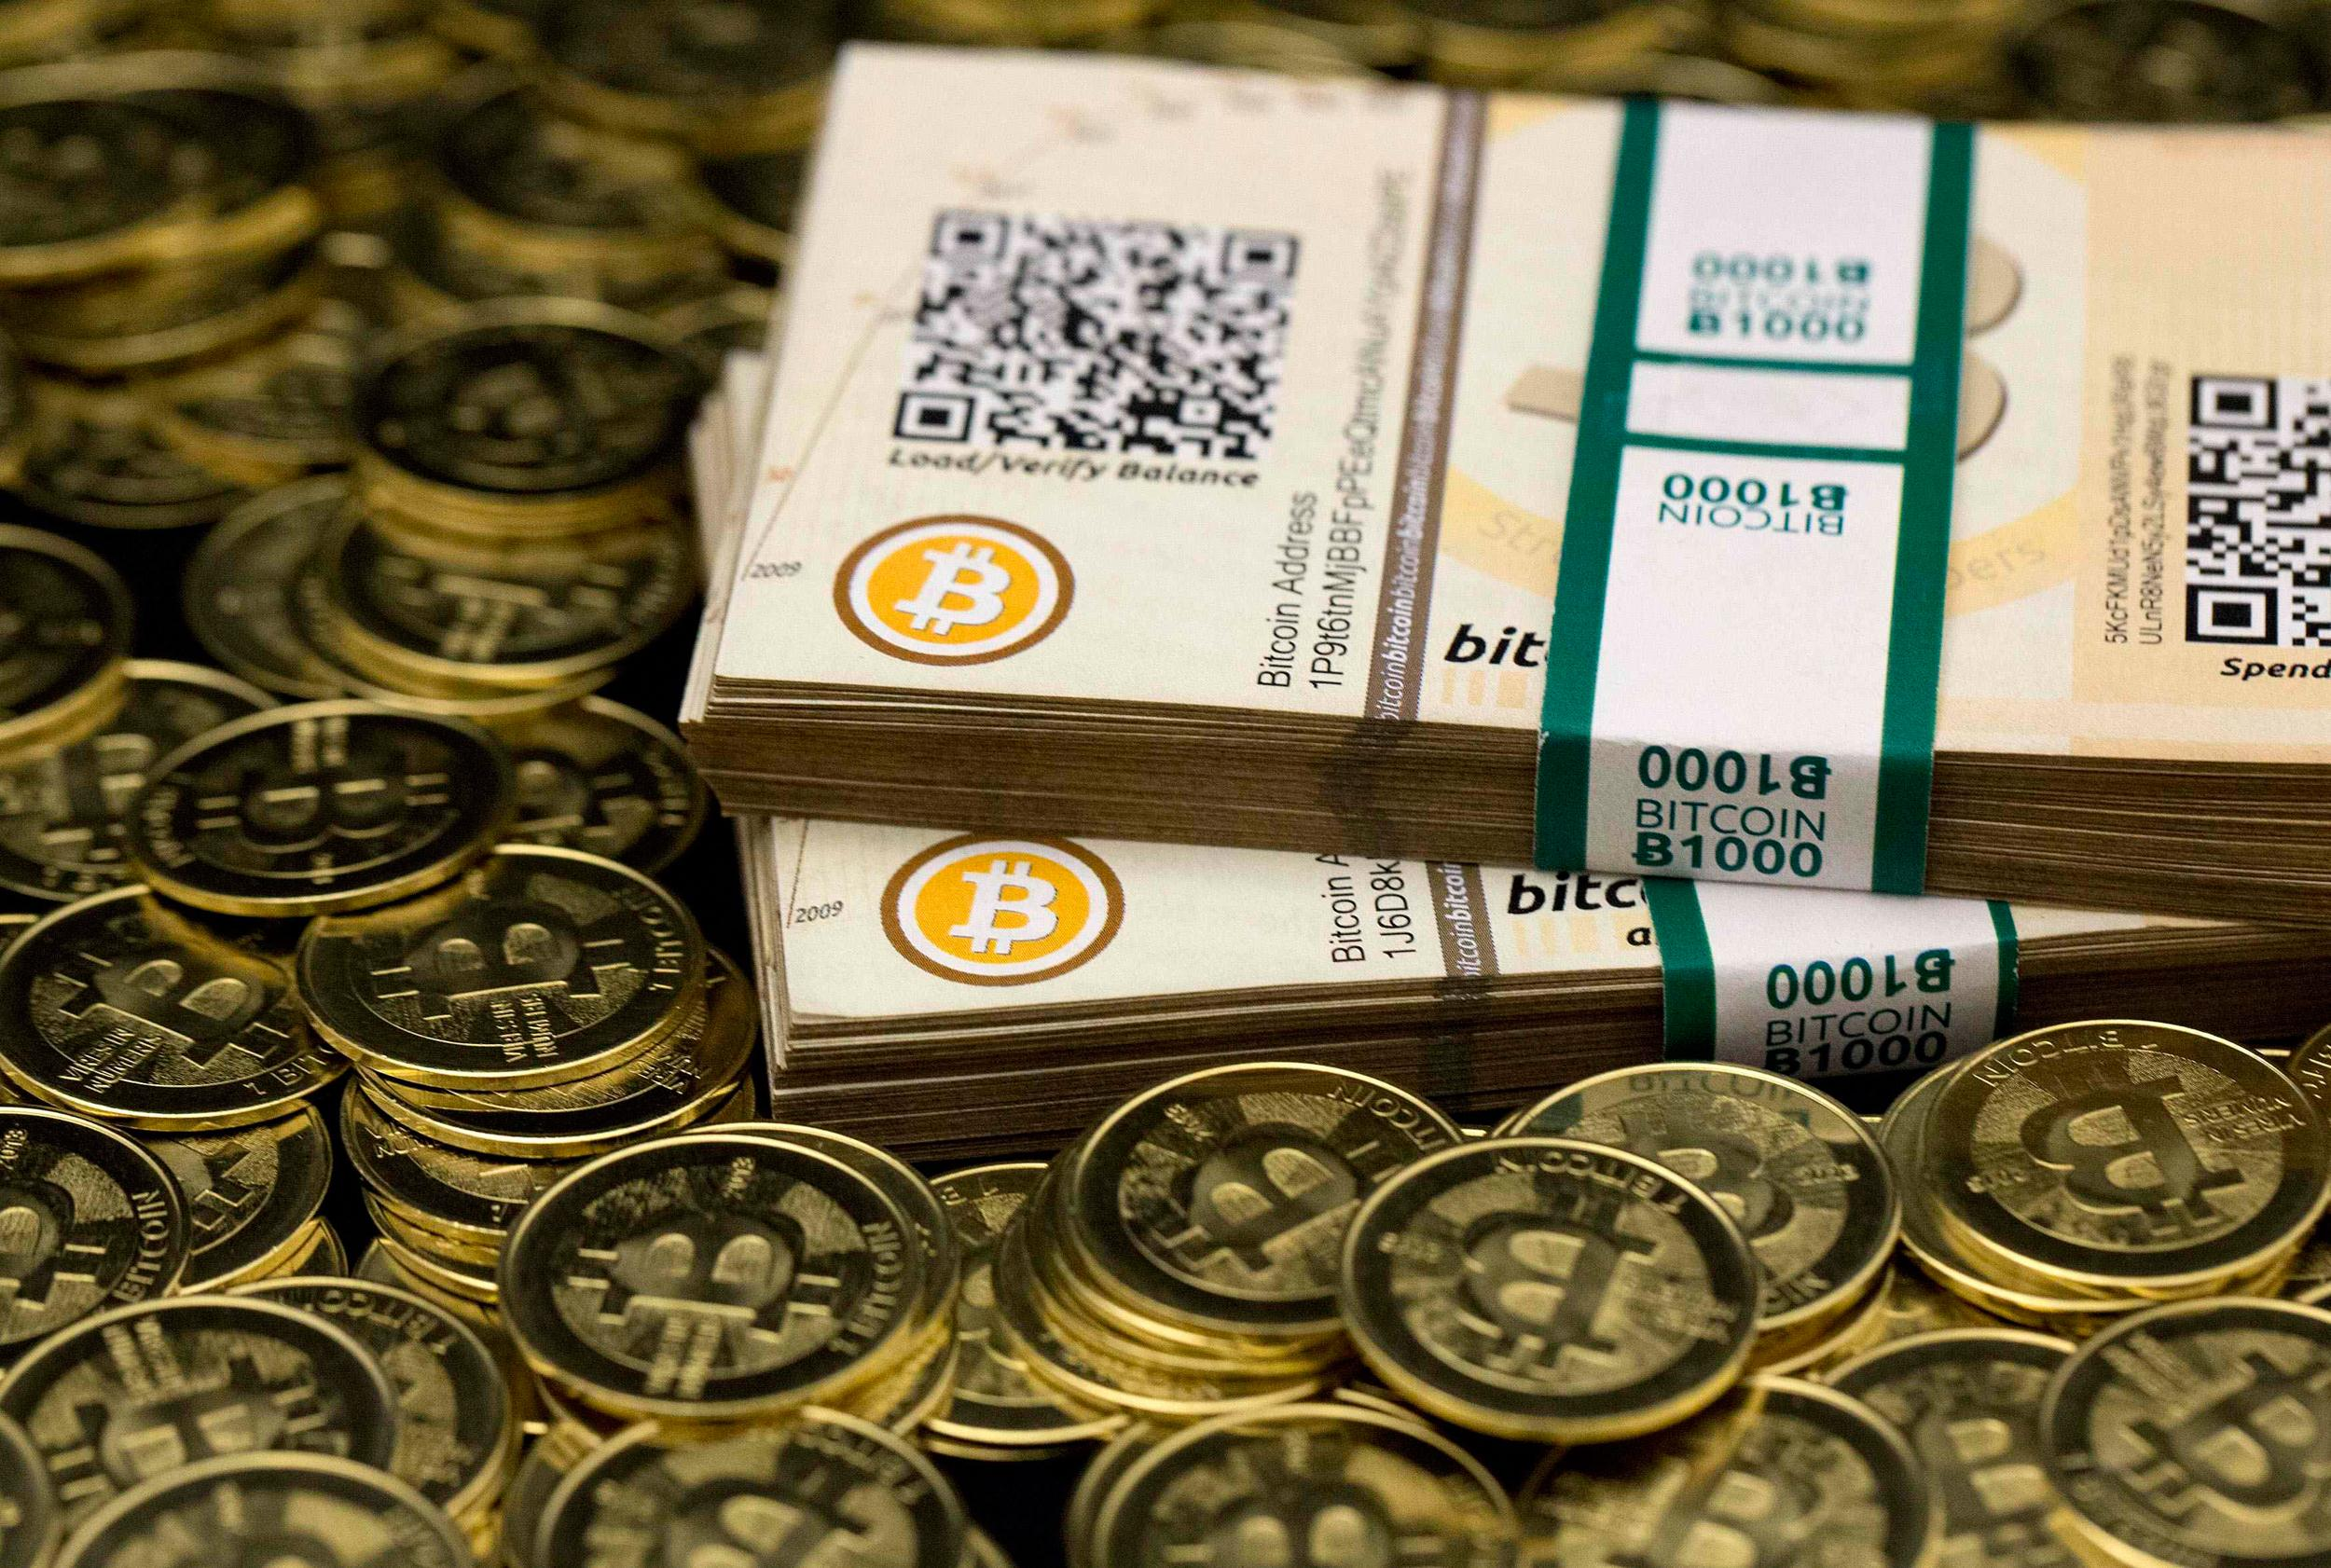 Image: Some of Bitcoin enthusiast Mike Caldwell's coins and paper vouchers often called